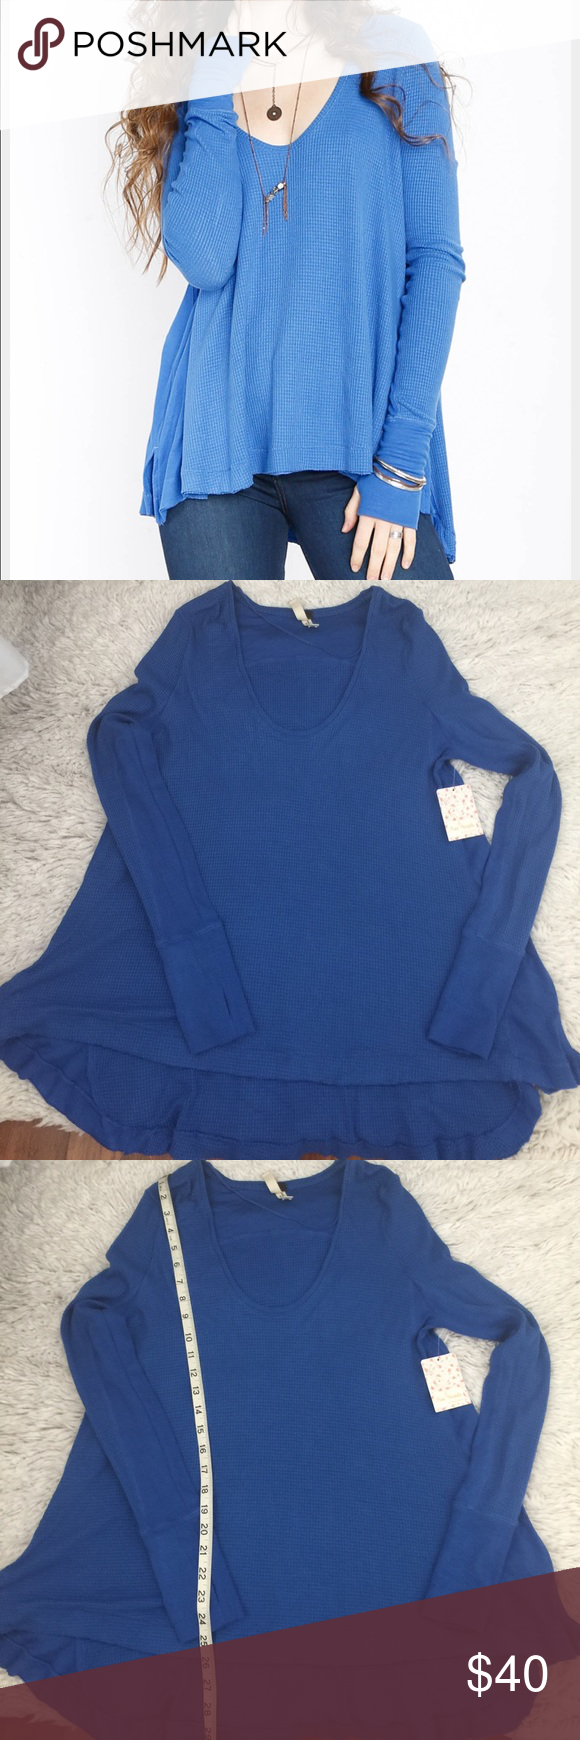 🦋NWT Free People Malibu blue thermal, size s 🦋NWT Free People Malibu thermal, size s, color BLUE.Picture # 5 just to show the back. Free People Tops Tees - Long Sleeve